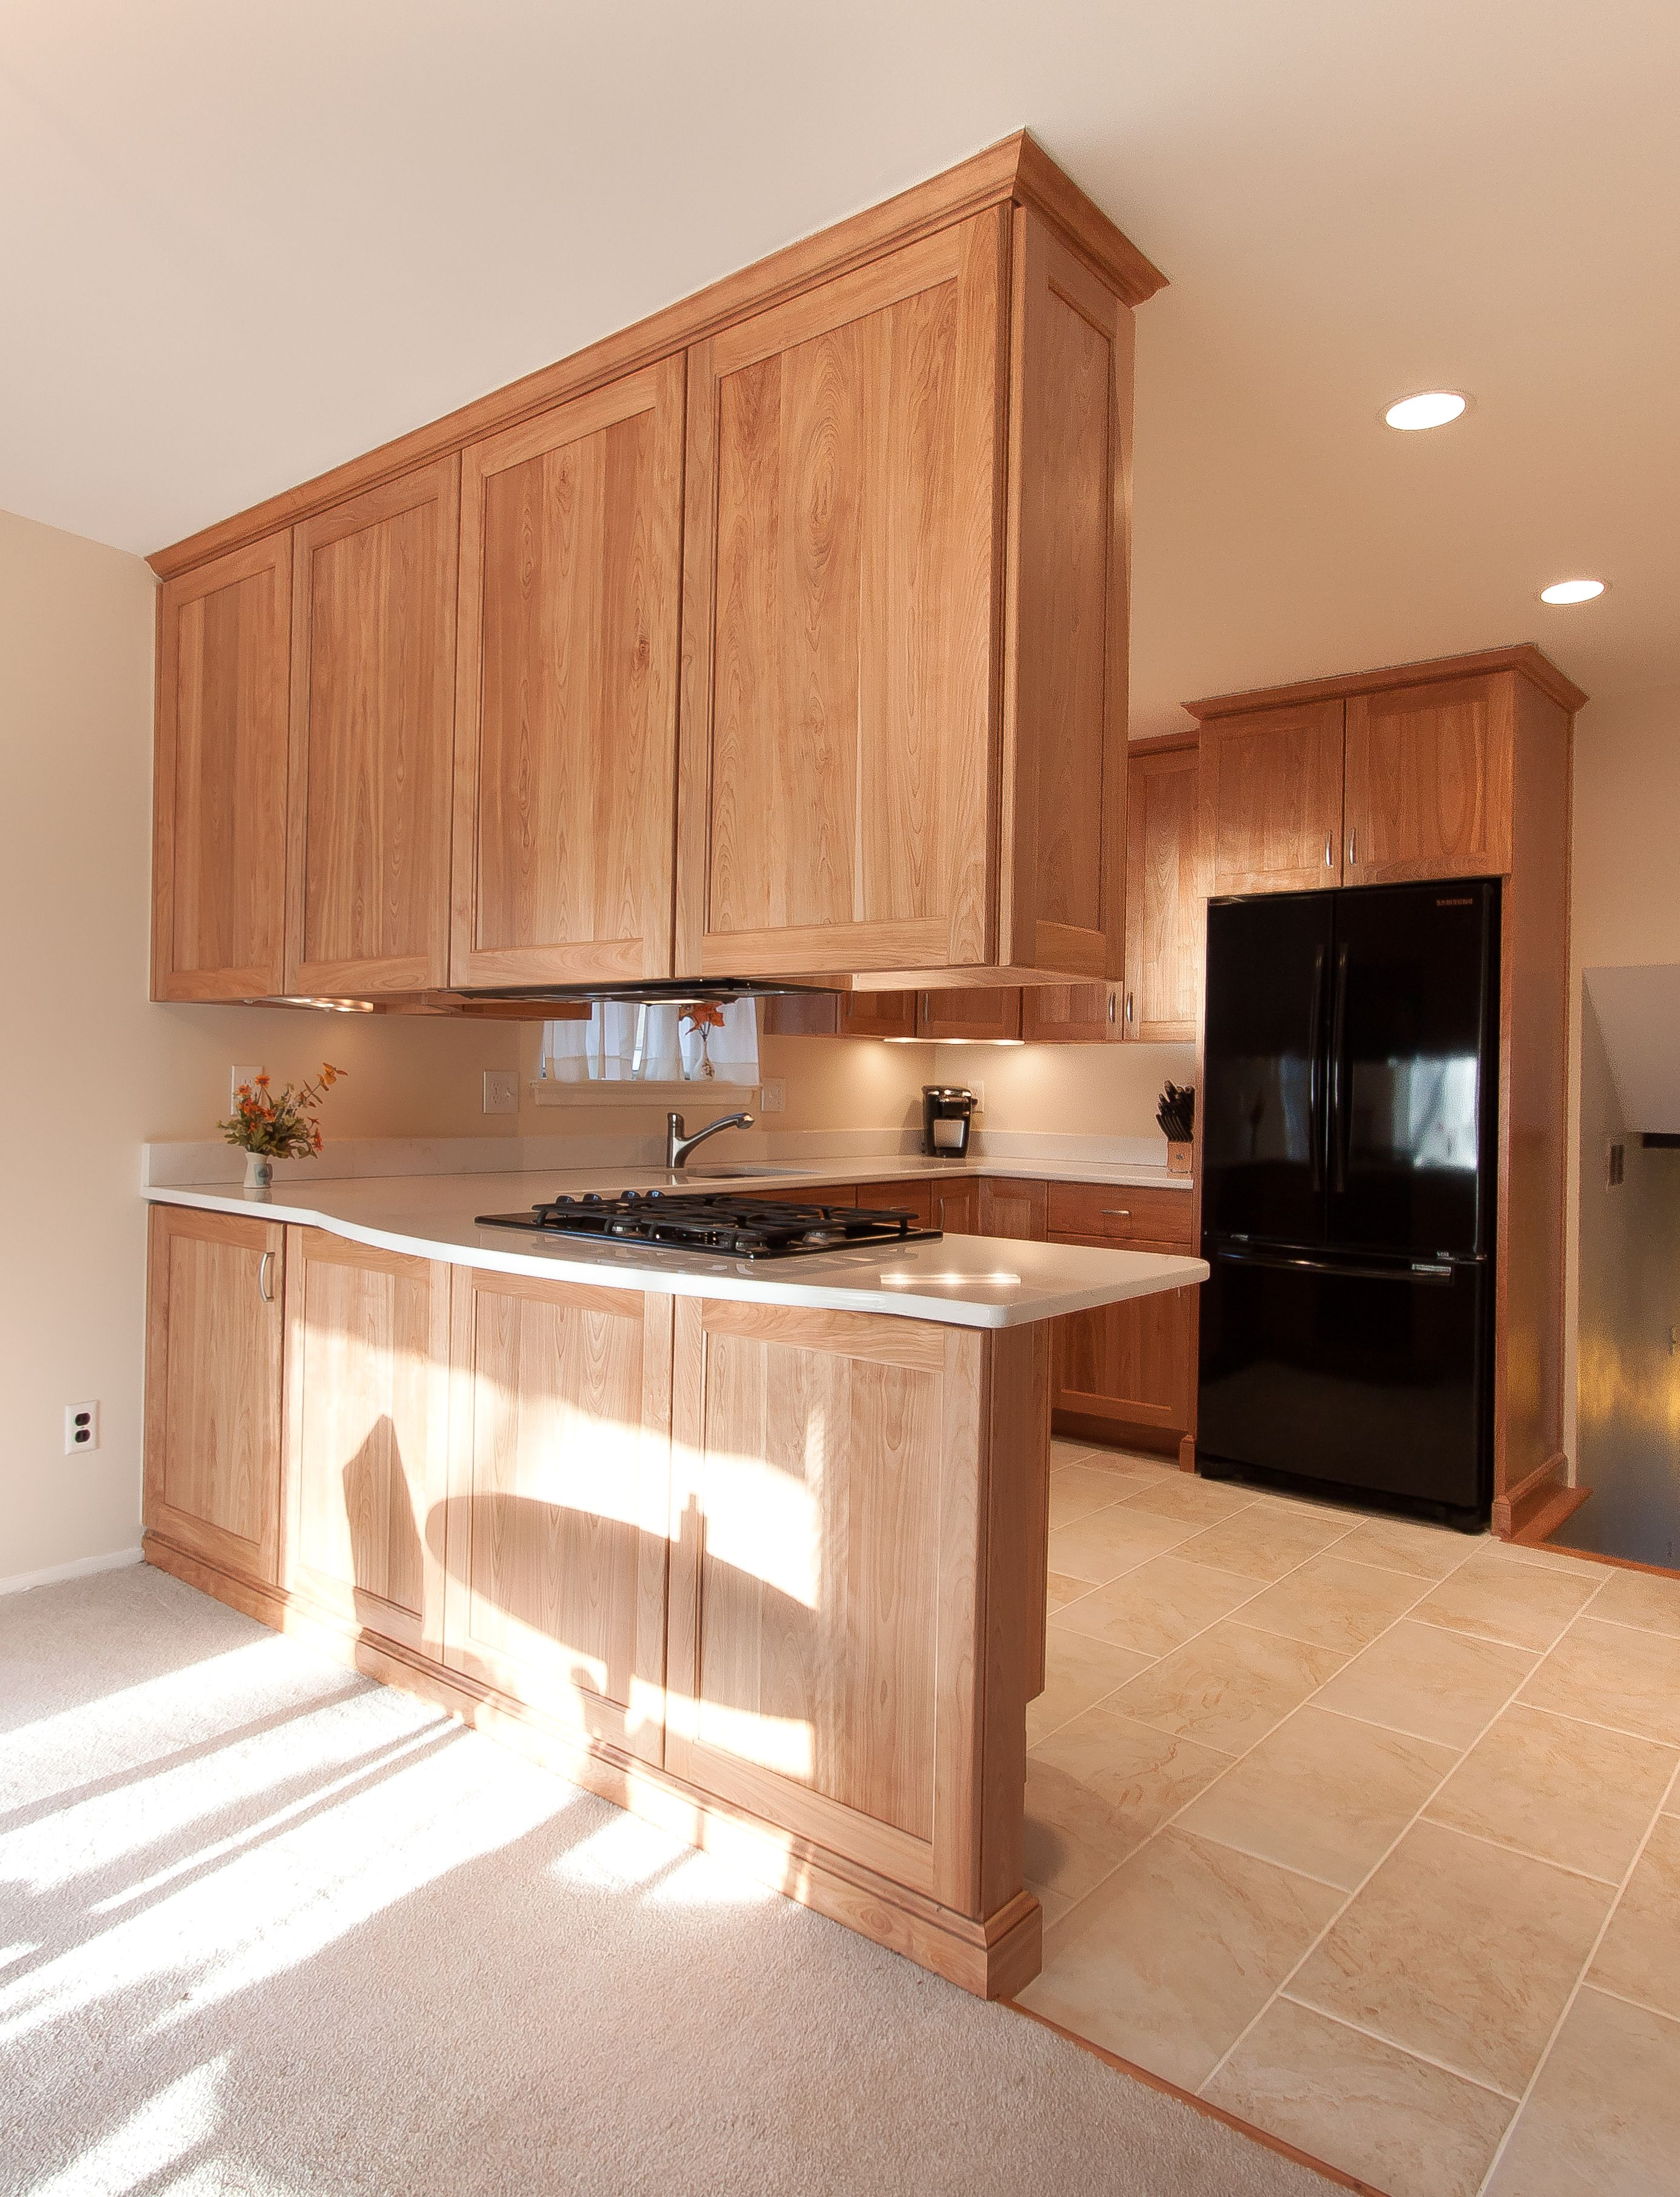 Custom Kitchen Remodel With Natural Red Birch Cabinets Custom Kitchen Remodel Diy Kitchen Remodel New Kitchen Cabinets